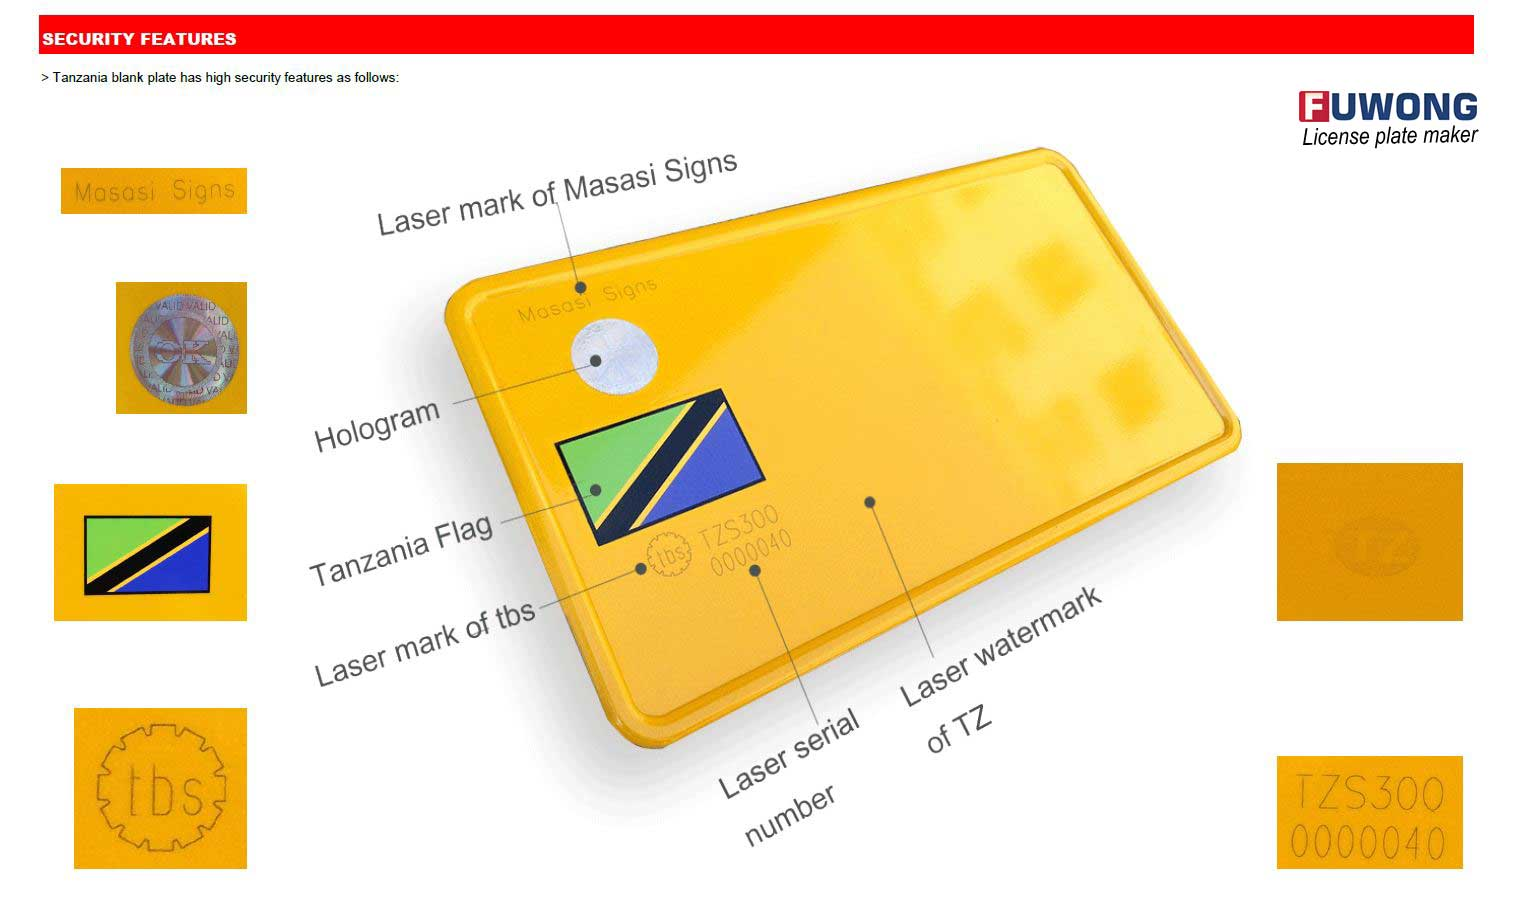 Masasi license plate for Tanzania license plate